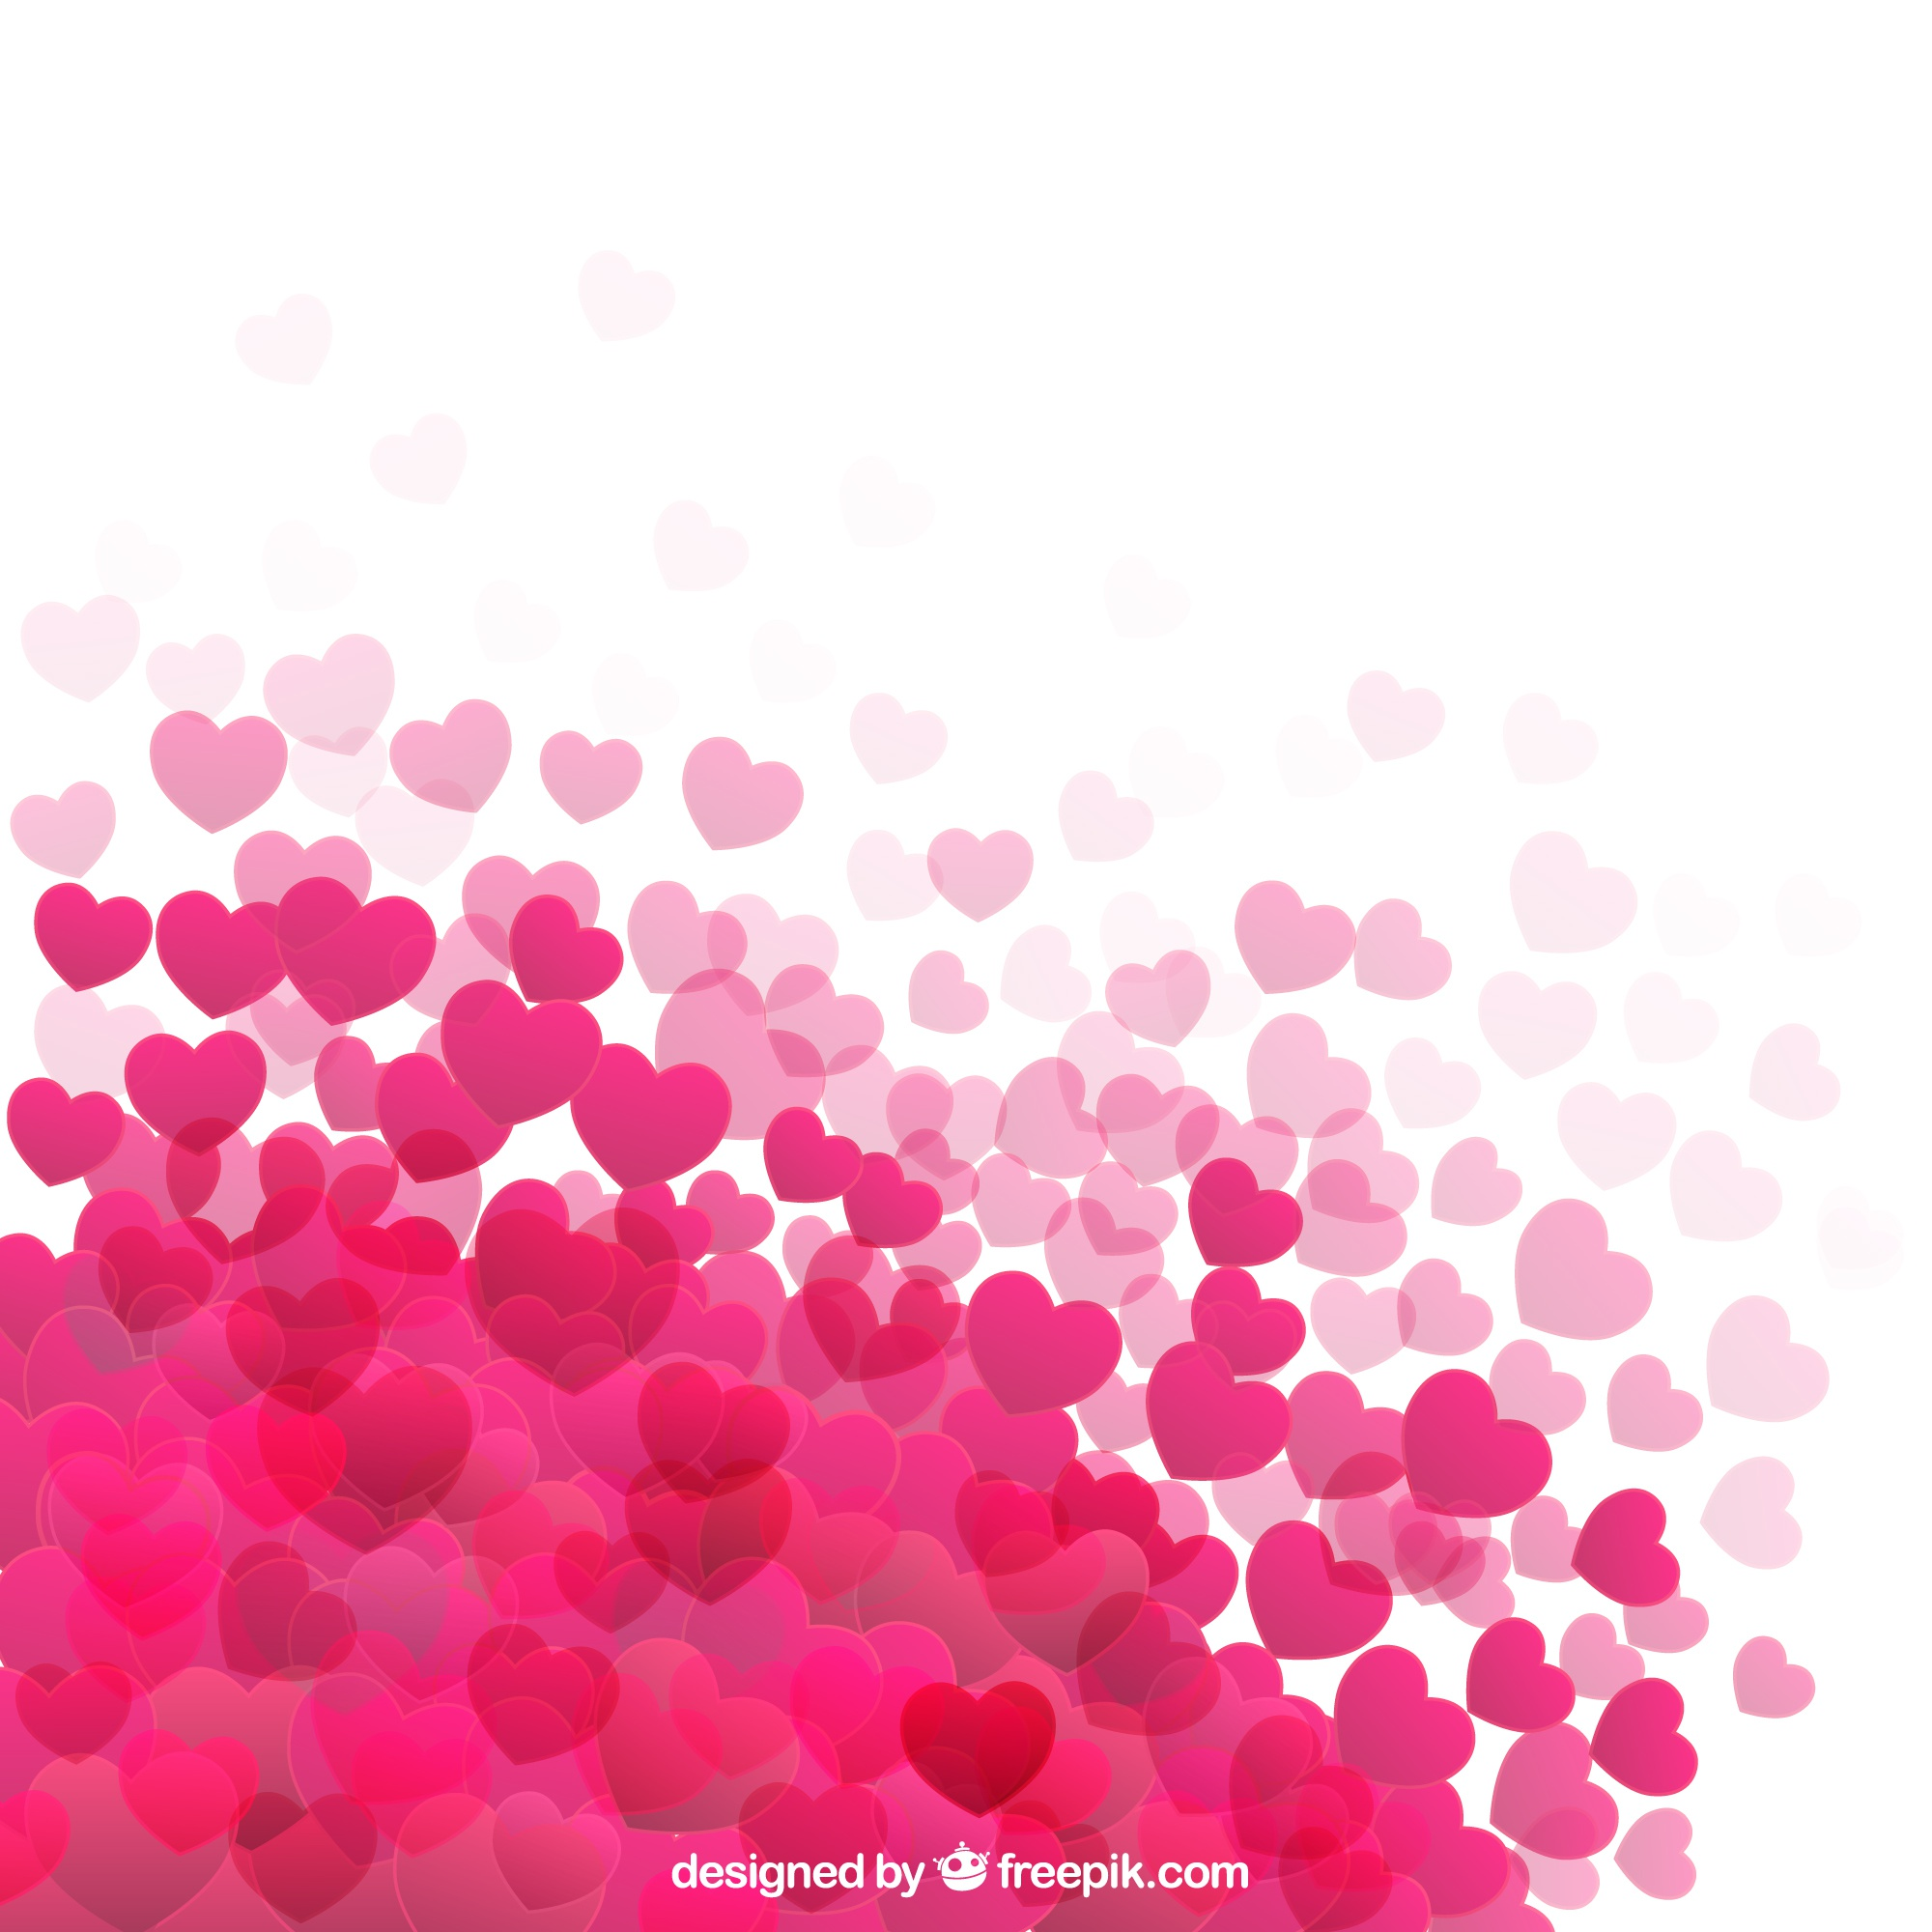 Hot pink hearts background